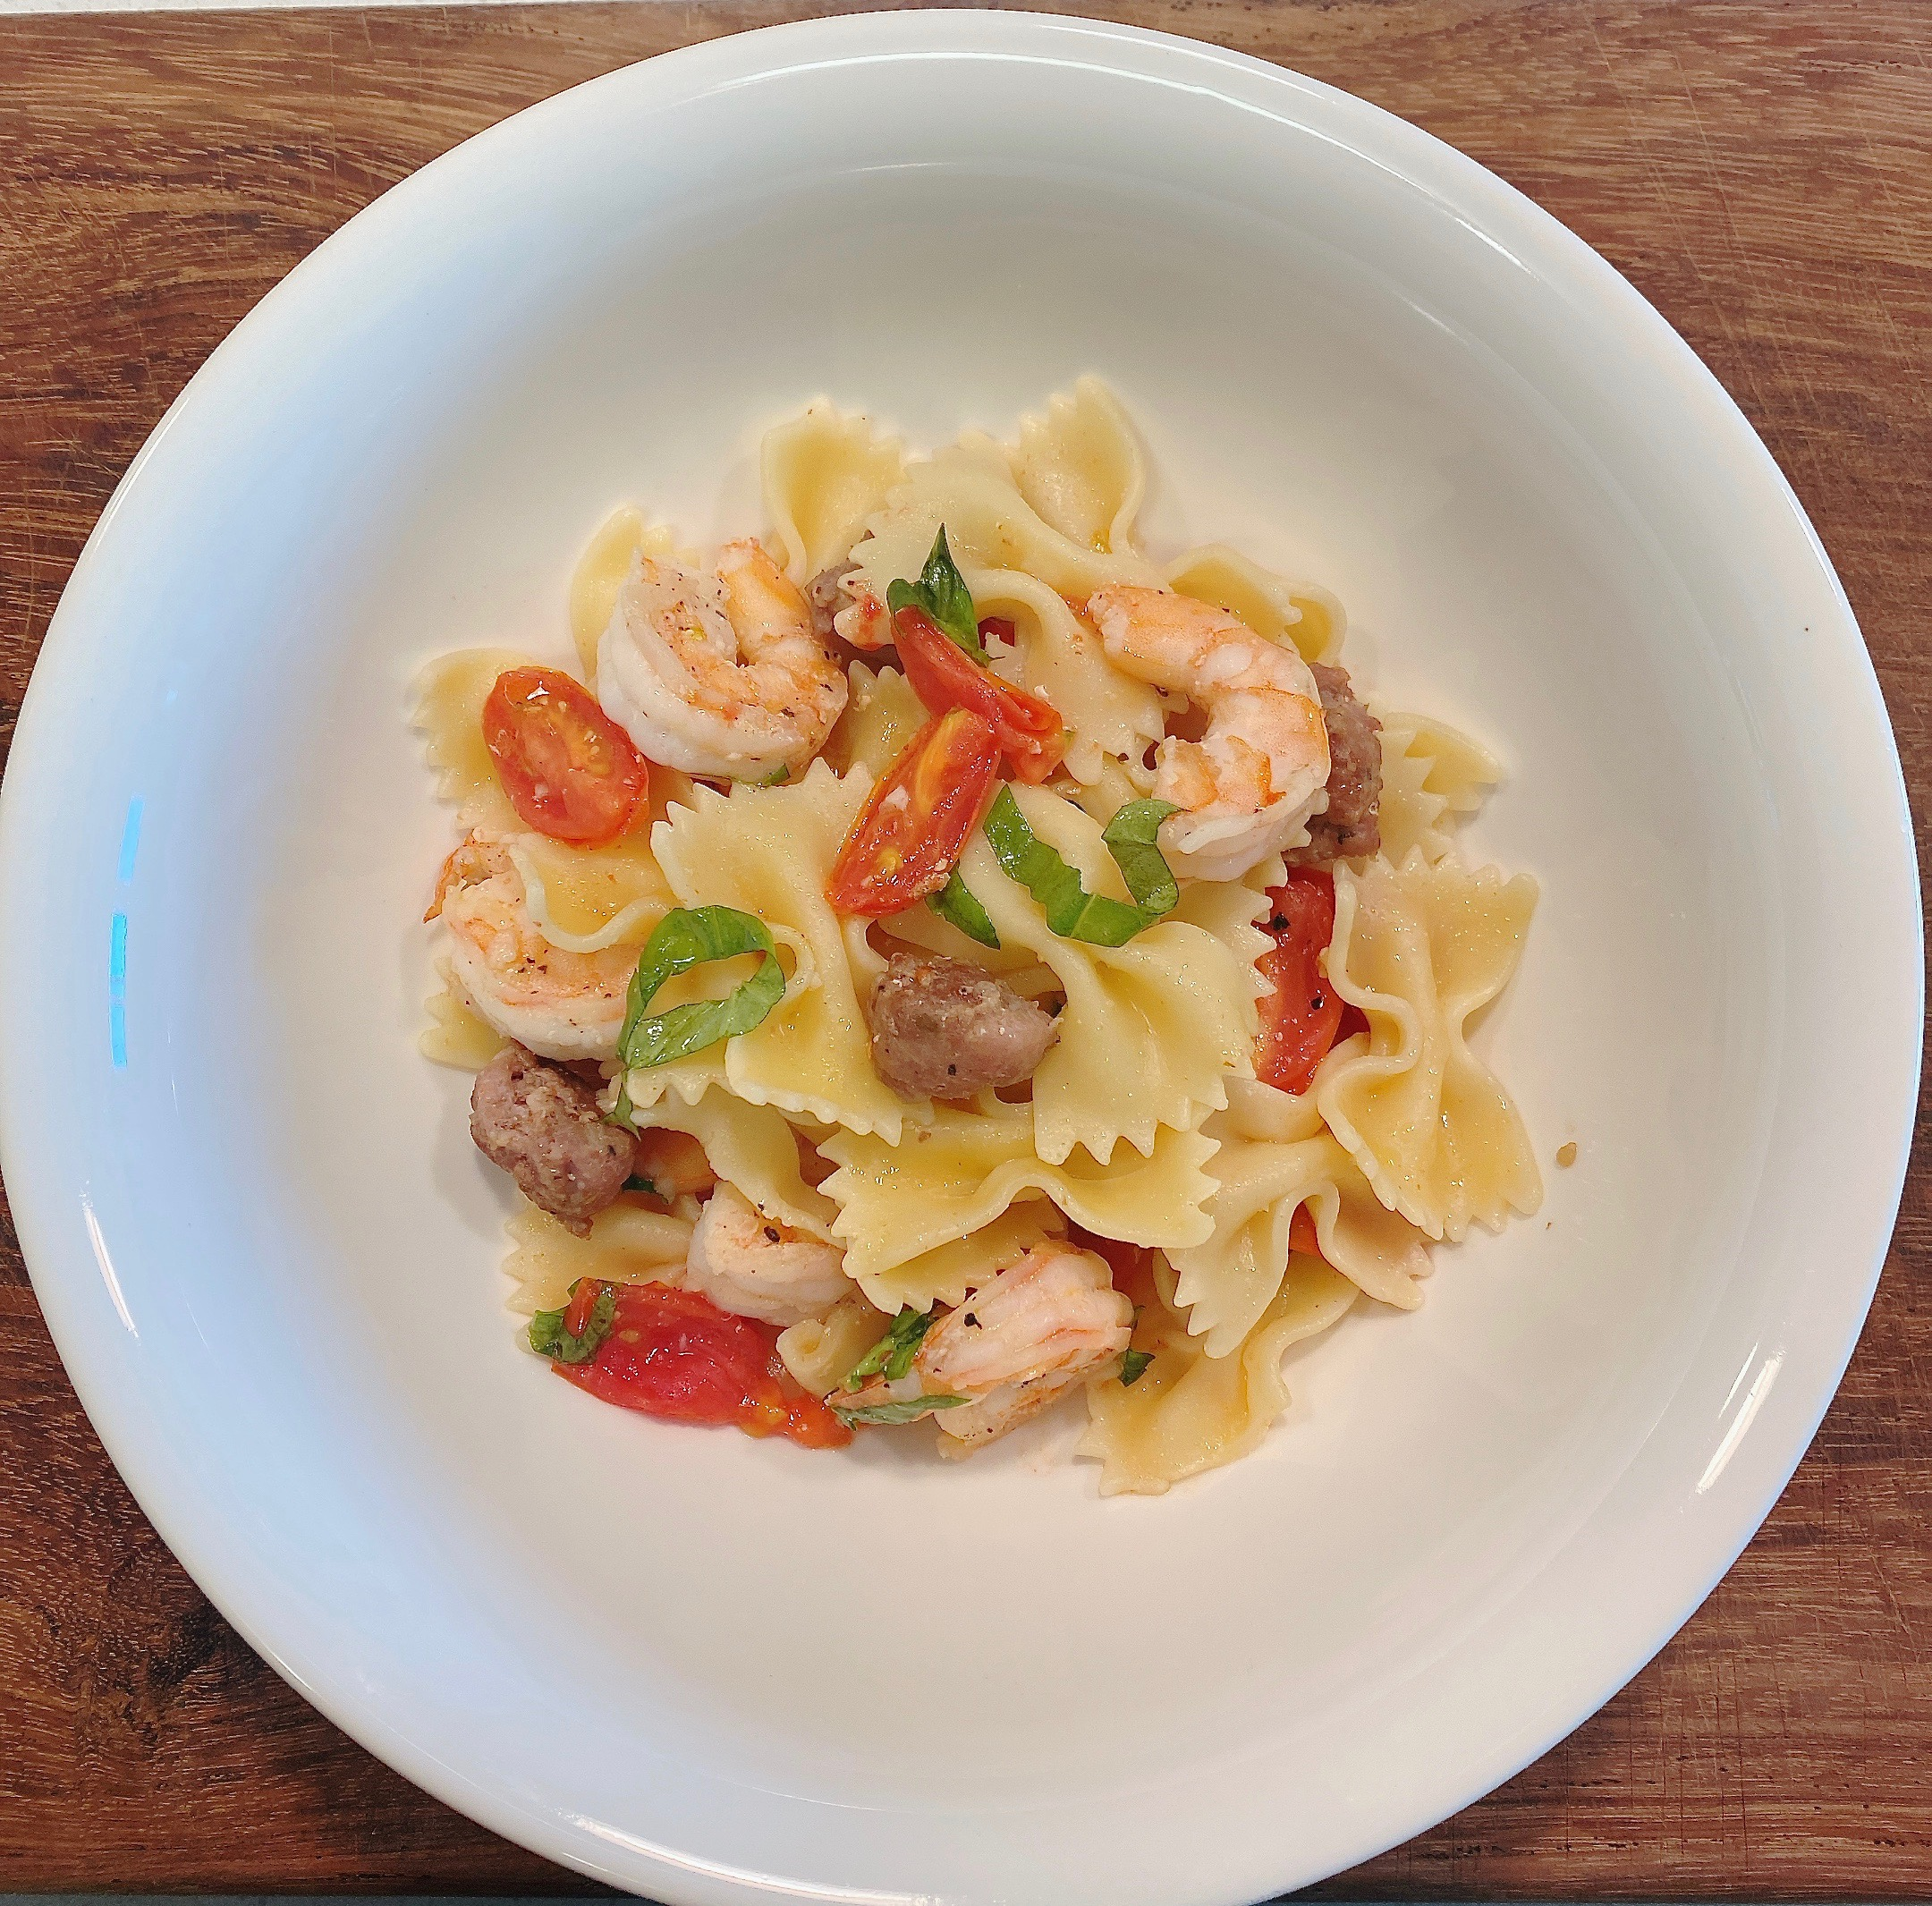 Shrimp and Sausage Pasta